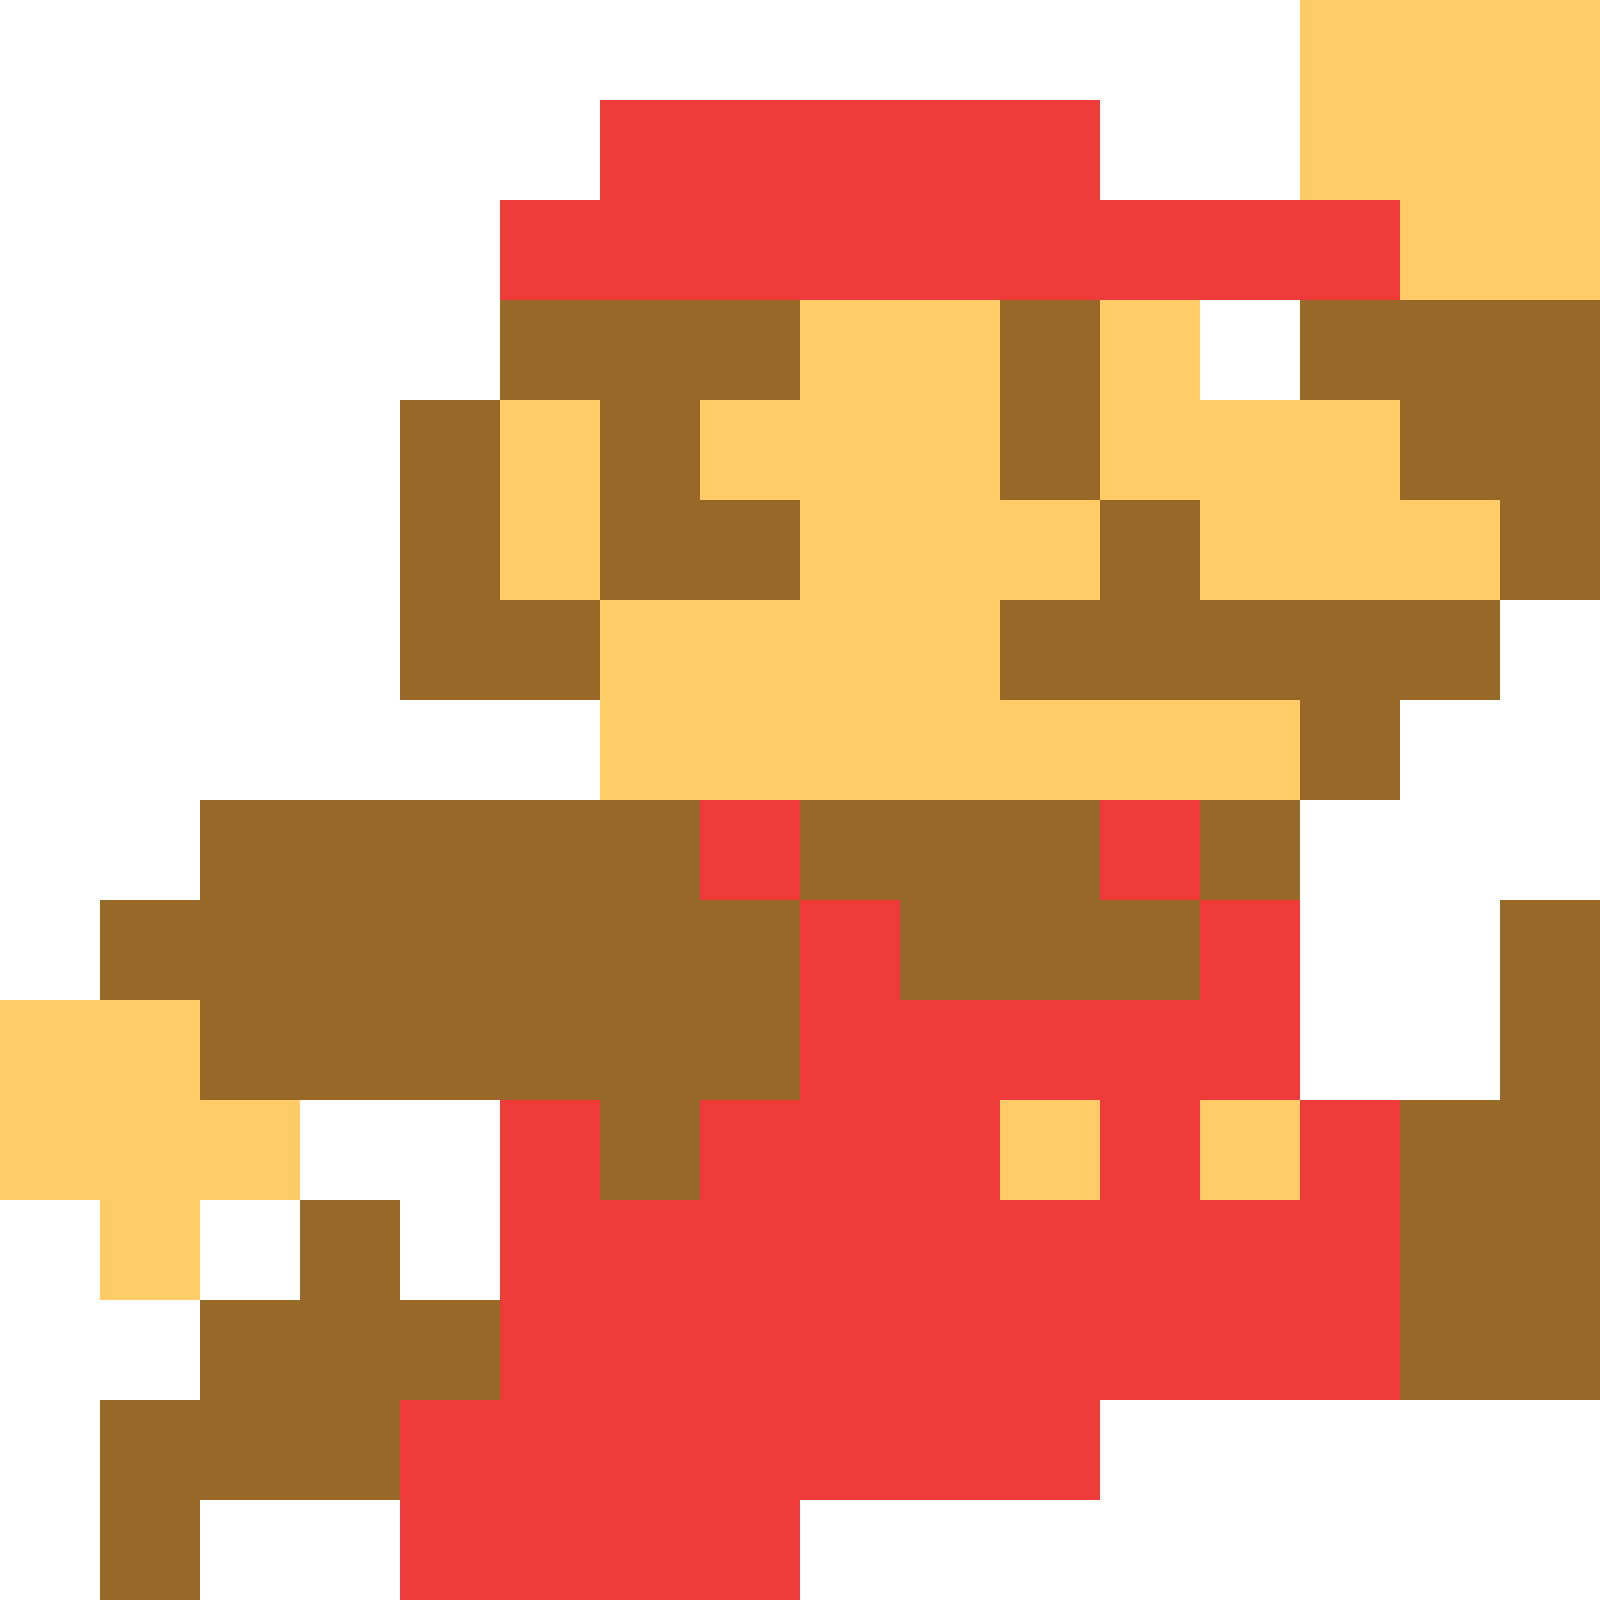 8 bit mario cannon png. Fighters of lapis wiki